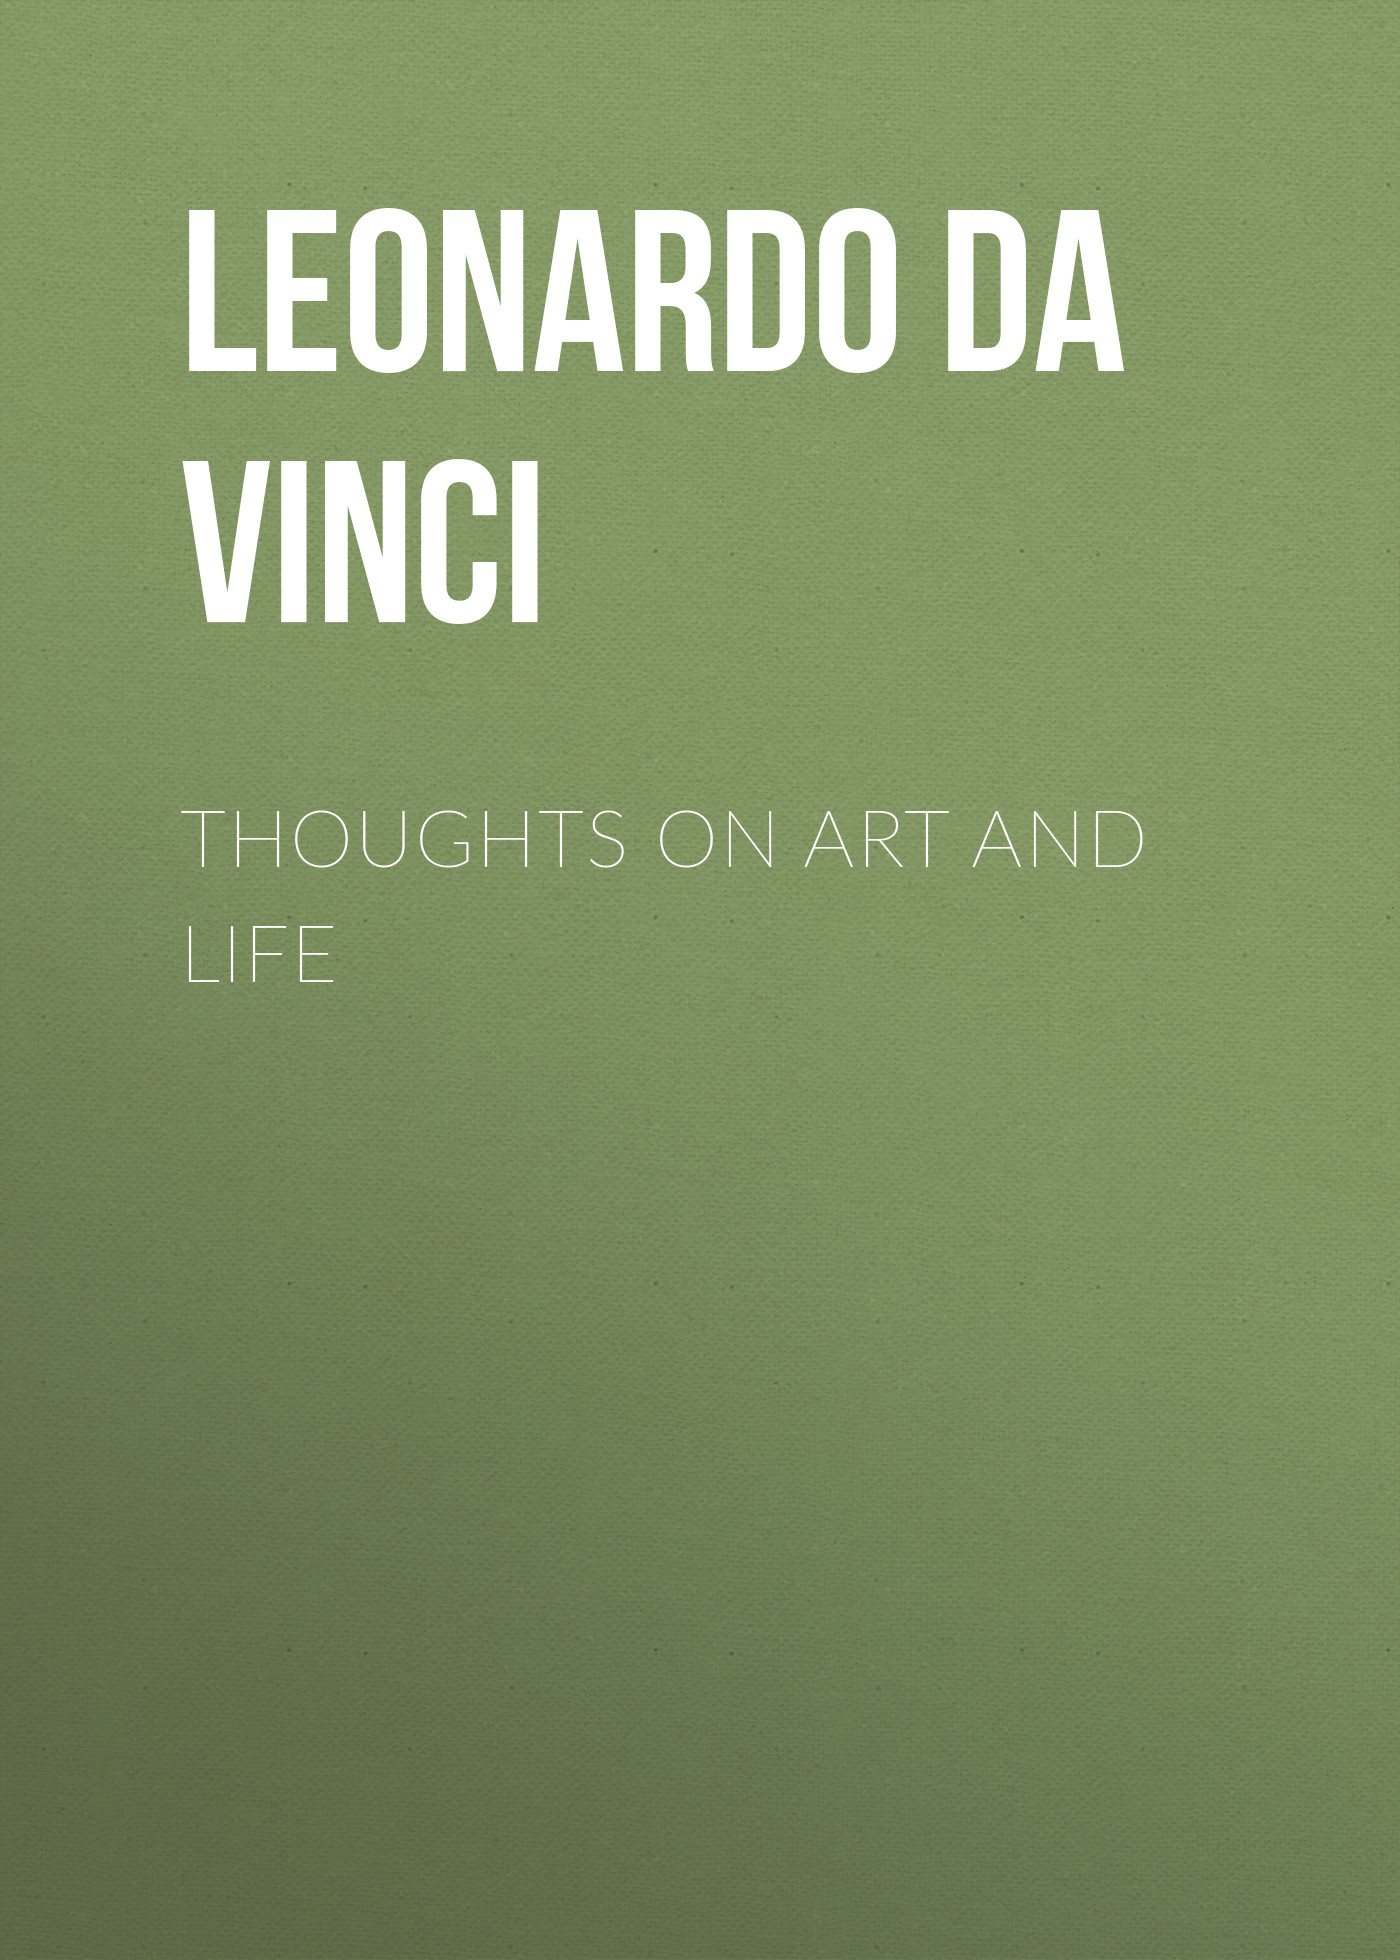 Leonardo da Vinci Thoughts on Art and Life wilhelm von bode studien uber leonardo da vinci classic reprint